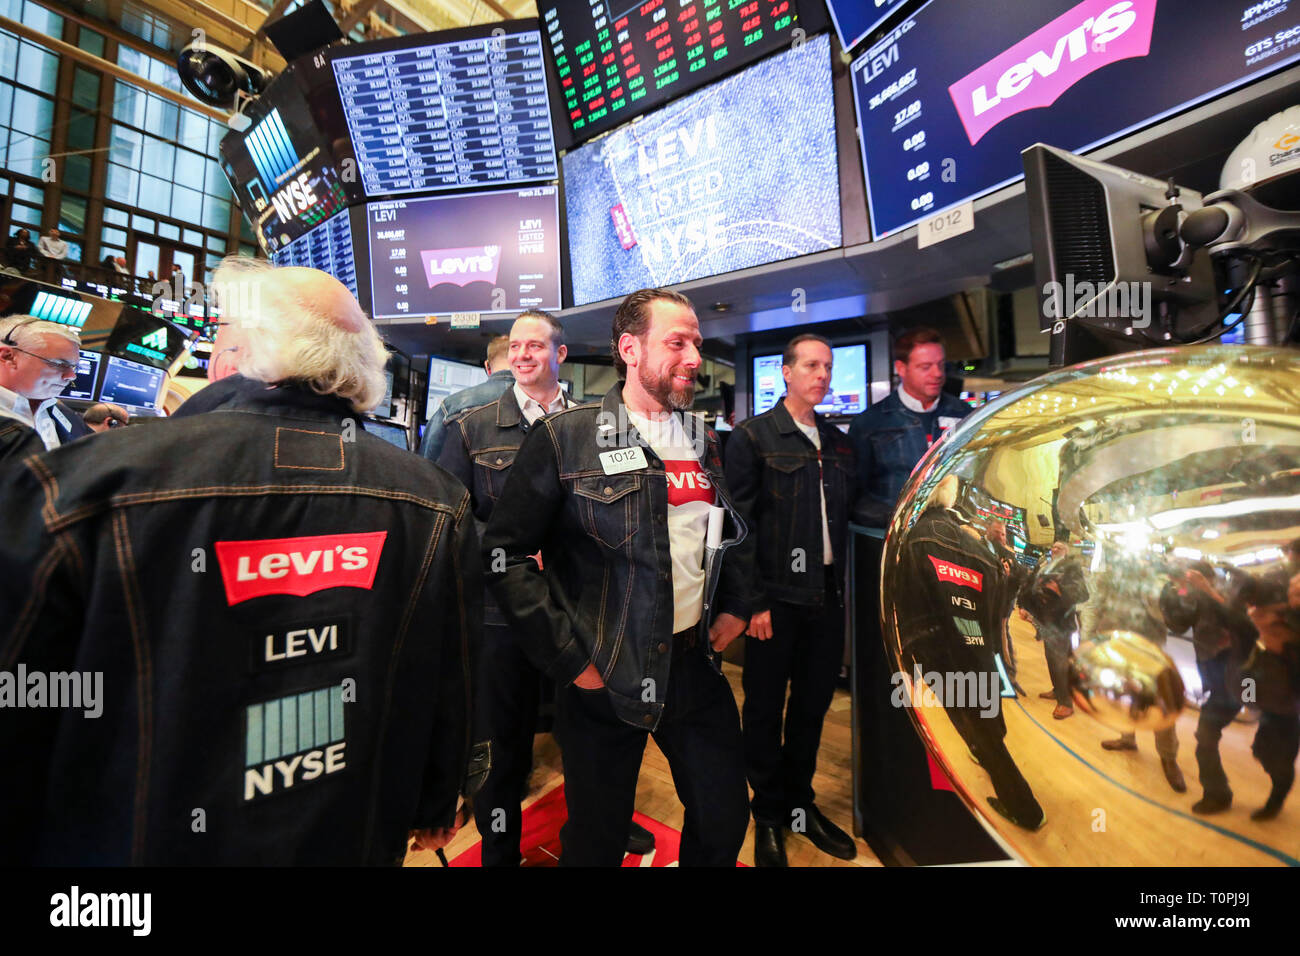 New York, USA. 21st Mar, 2019. Traders wearing denim clothing and jeans work at the New York Stock Exchange (NYSE) during the initial public offering (IPO) of Levi Strauss & Co., in New York, the United States, March 21, 2019. Blue jeans giant Levi Strauss & Co. began trading on the NYSE on Thurday. The 166-year-old company first went public in 1971, but has been private for the last 34 years. Credit: Wang Ying/Xinhua/Alamy Live News - Stock Image